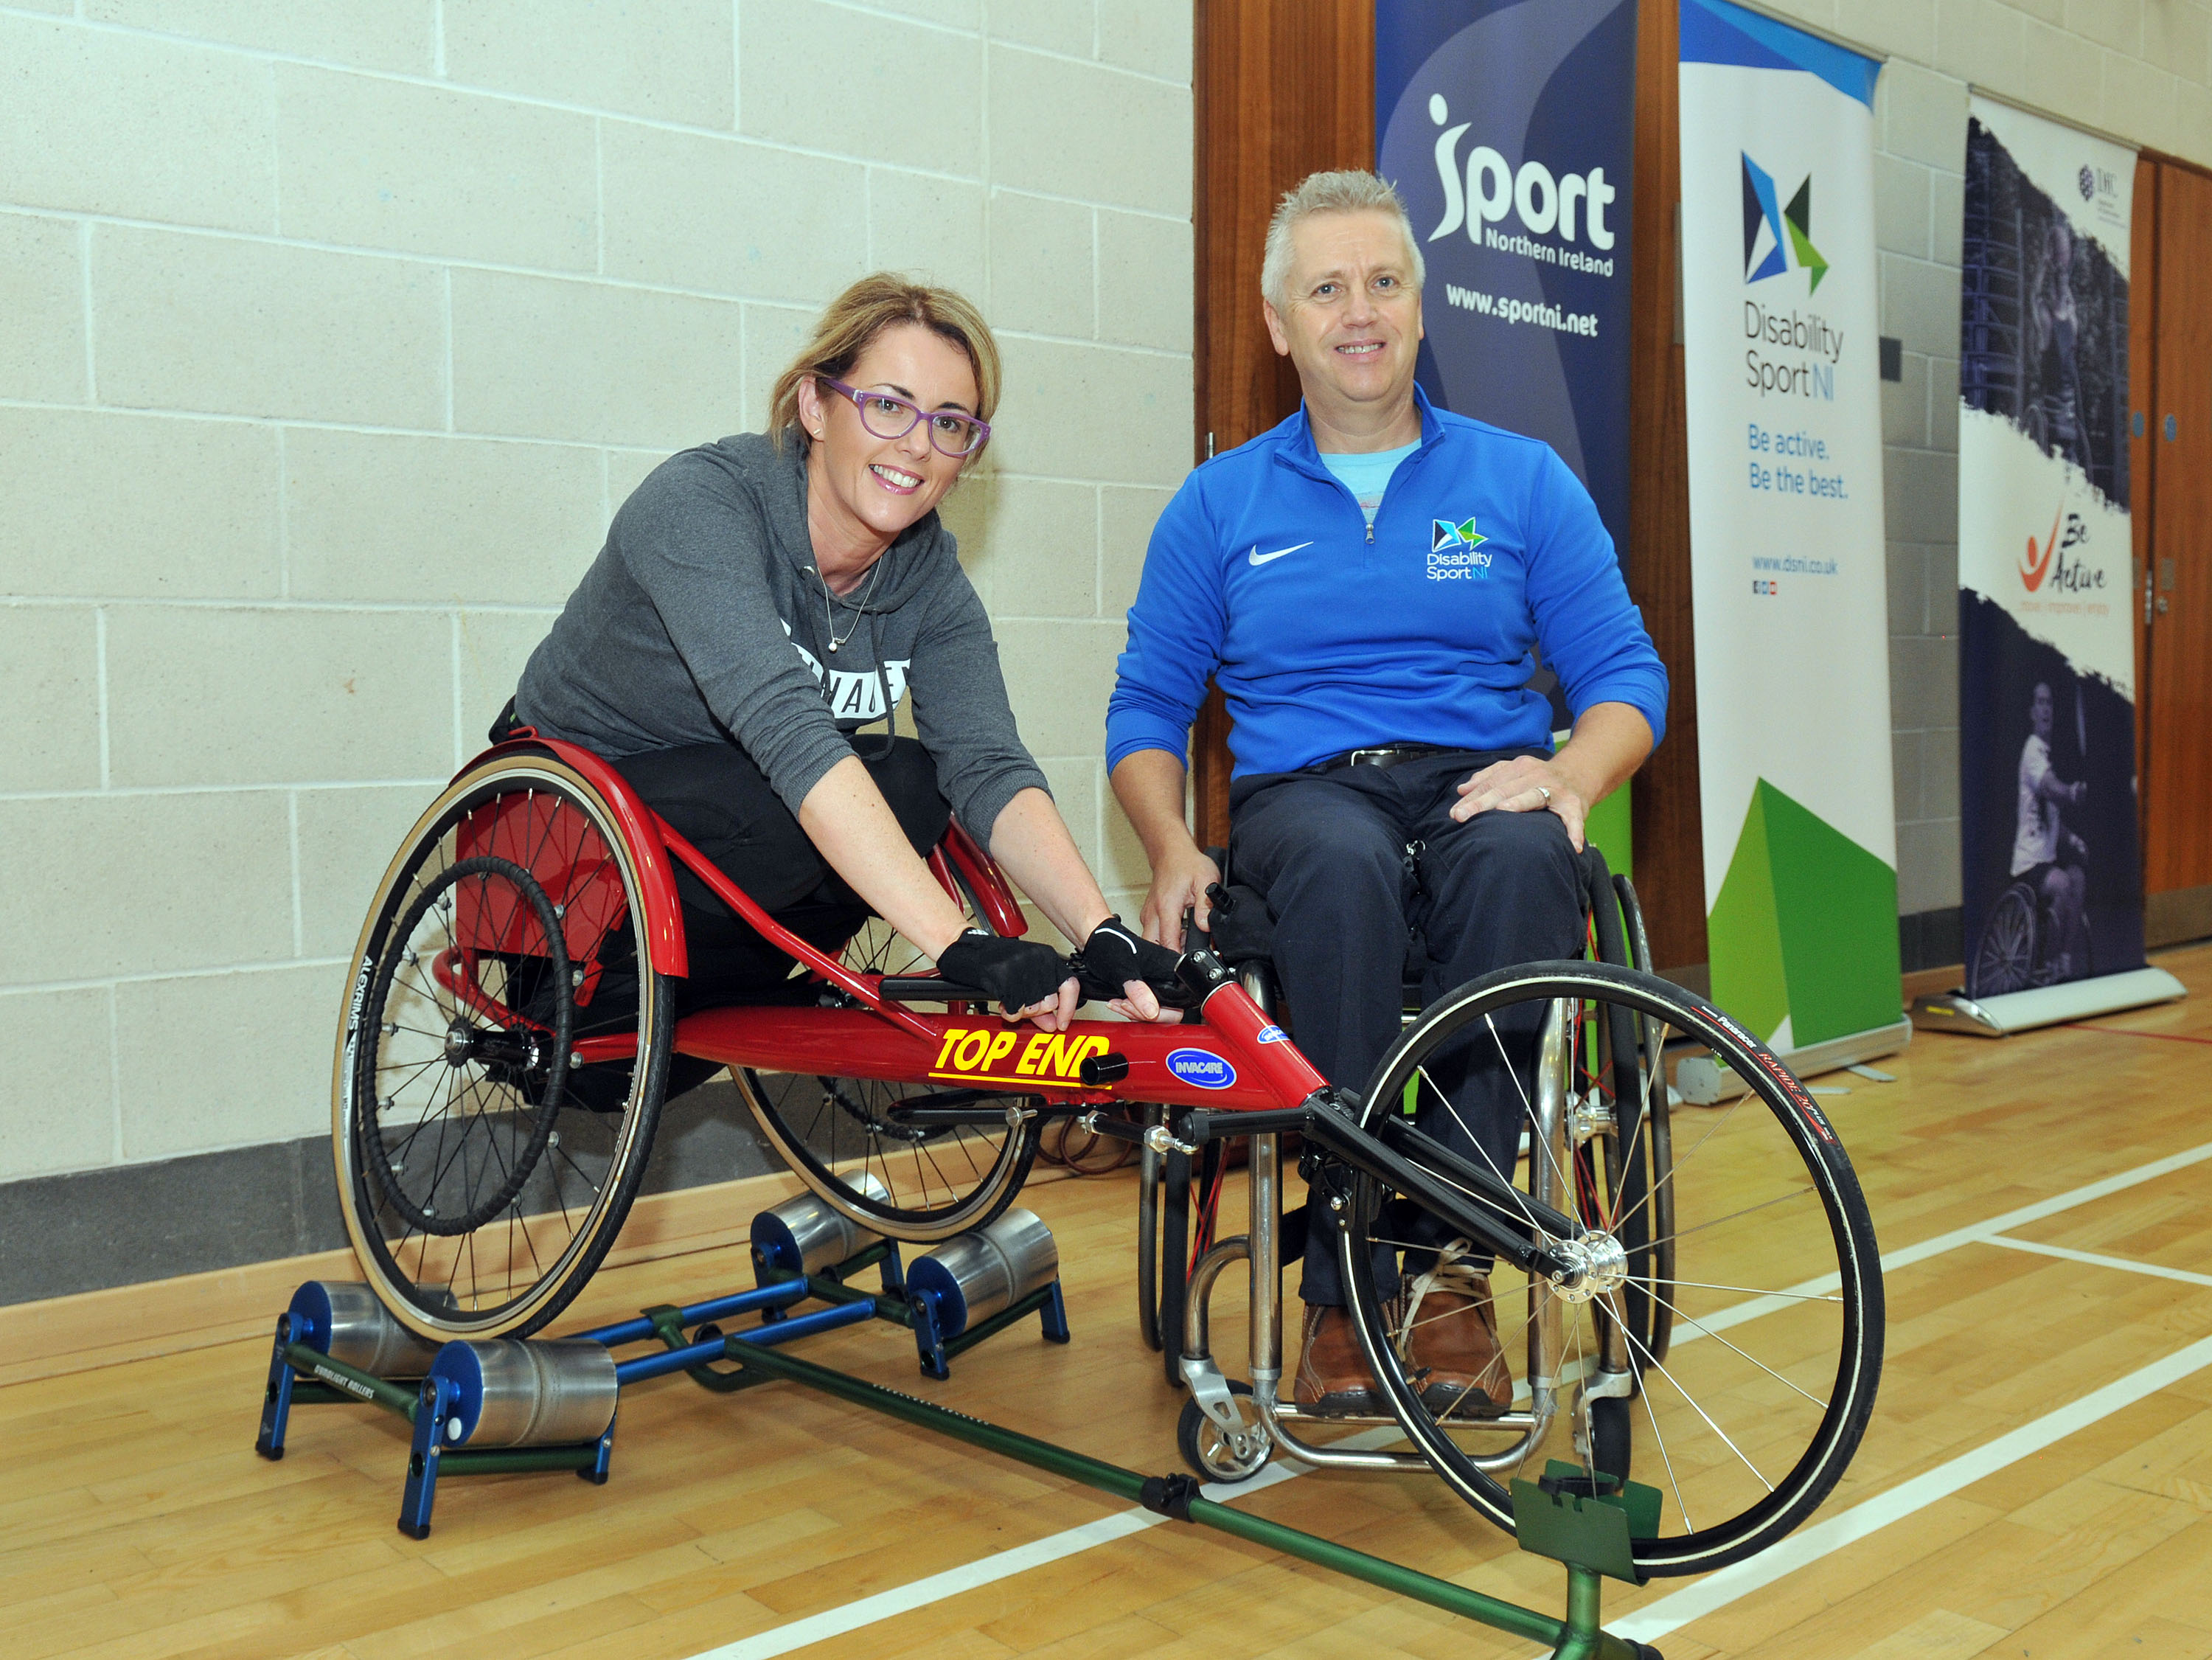 5.Julie Wilson testing her speed on the track chair with advice from Aubrey Bingham, Disability Sport NI